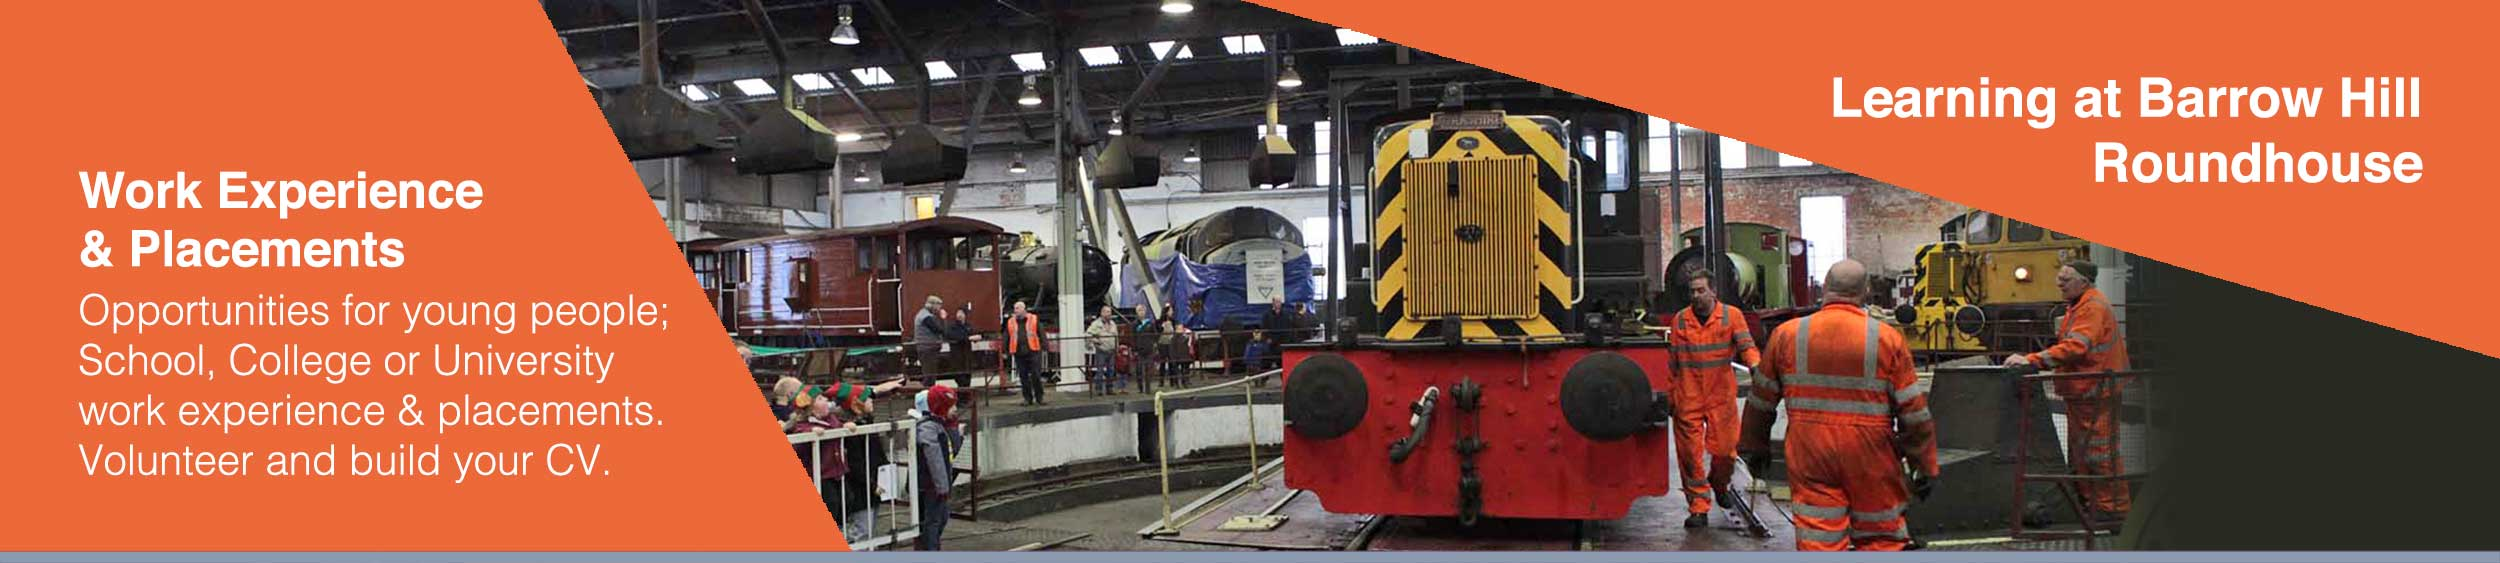 School work experience and colege and university work placements available at Barrow Hill Roundhouse, Chesterfield, Derbyshire